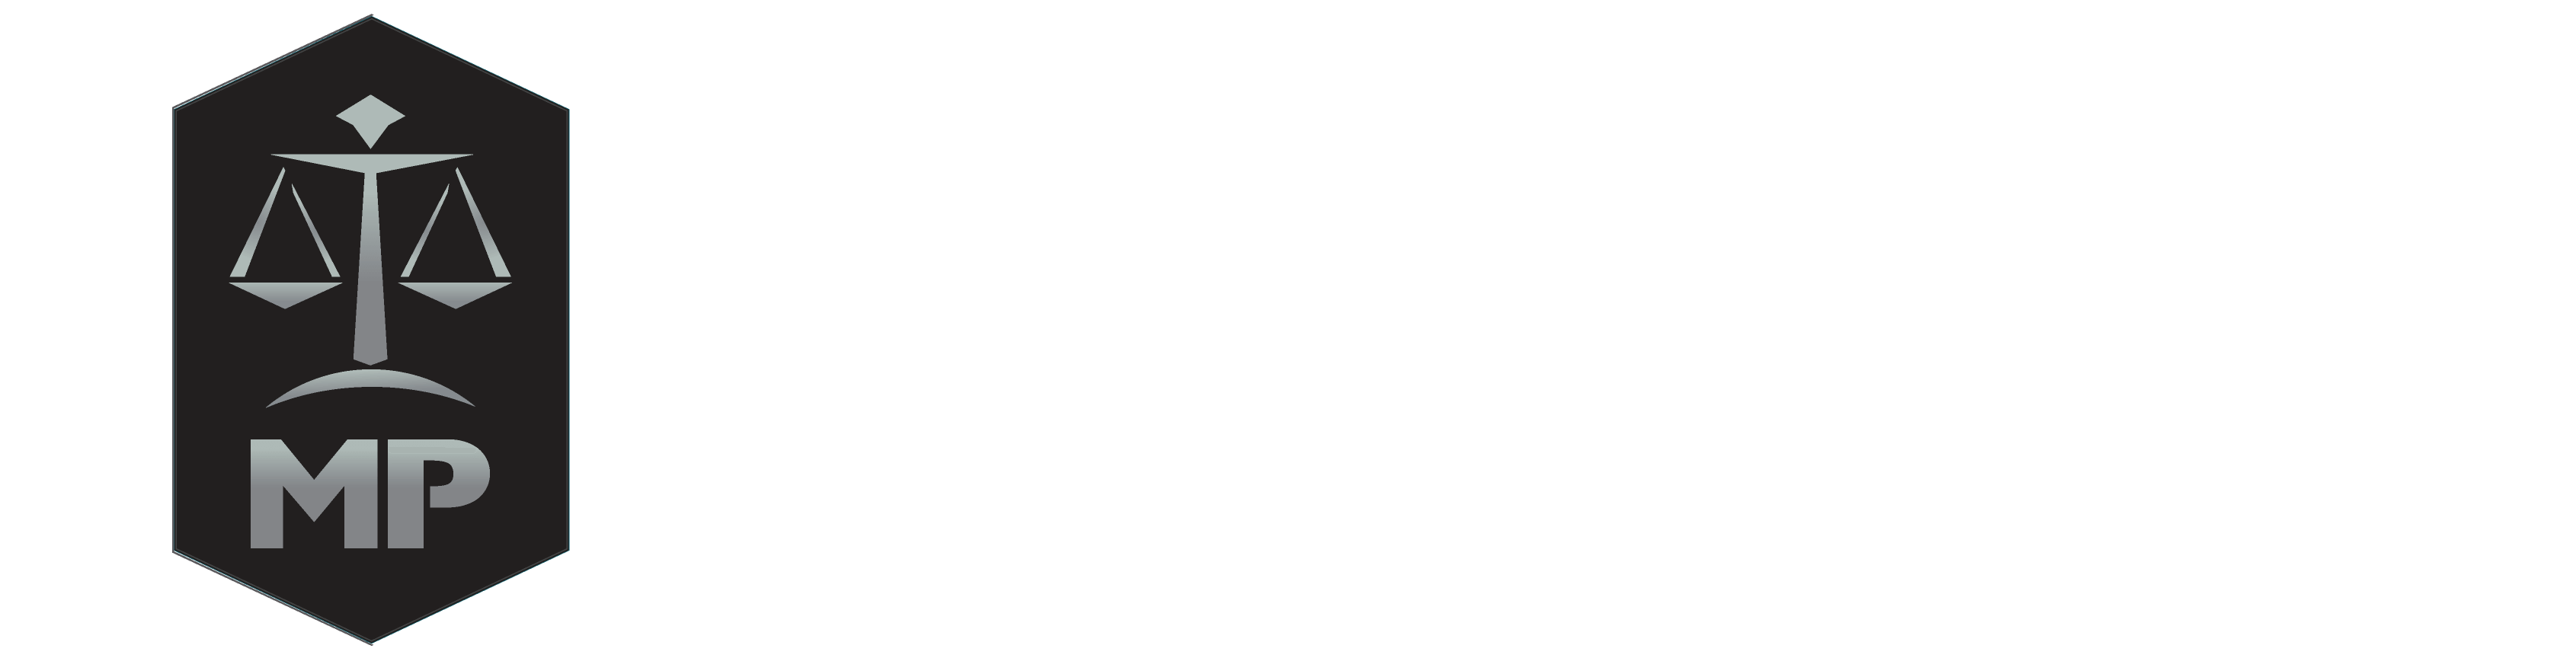 Michalaki, Pitsillidou Law Firm